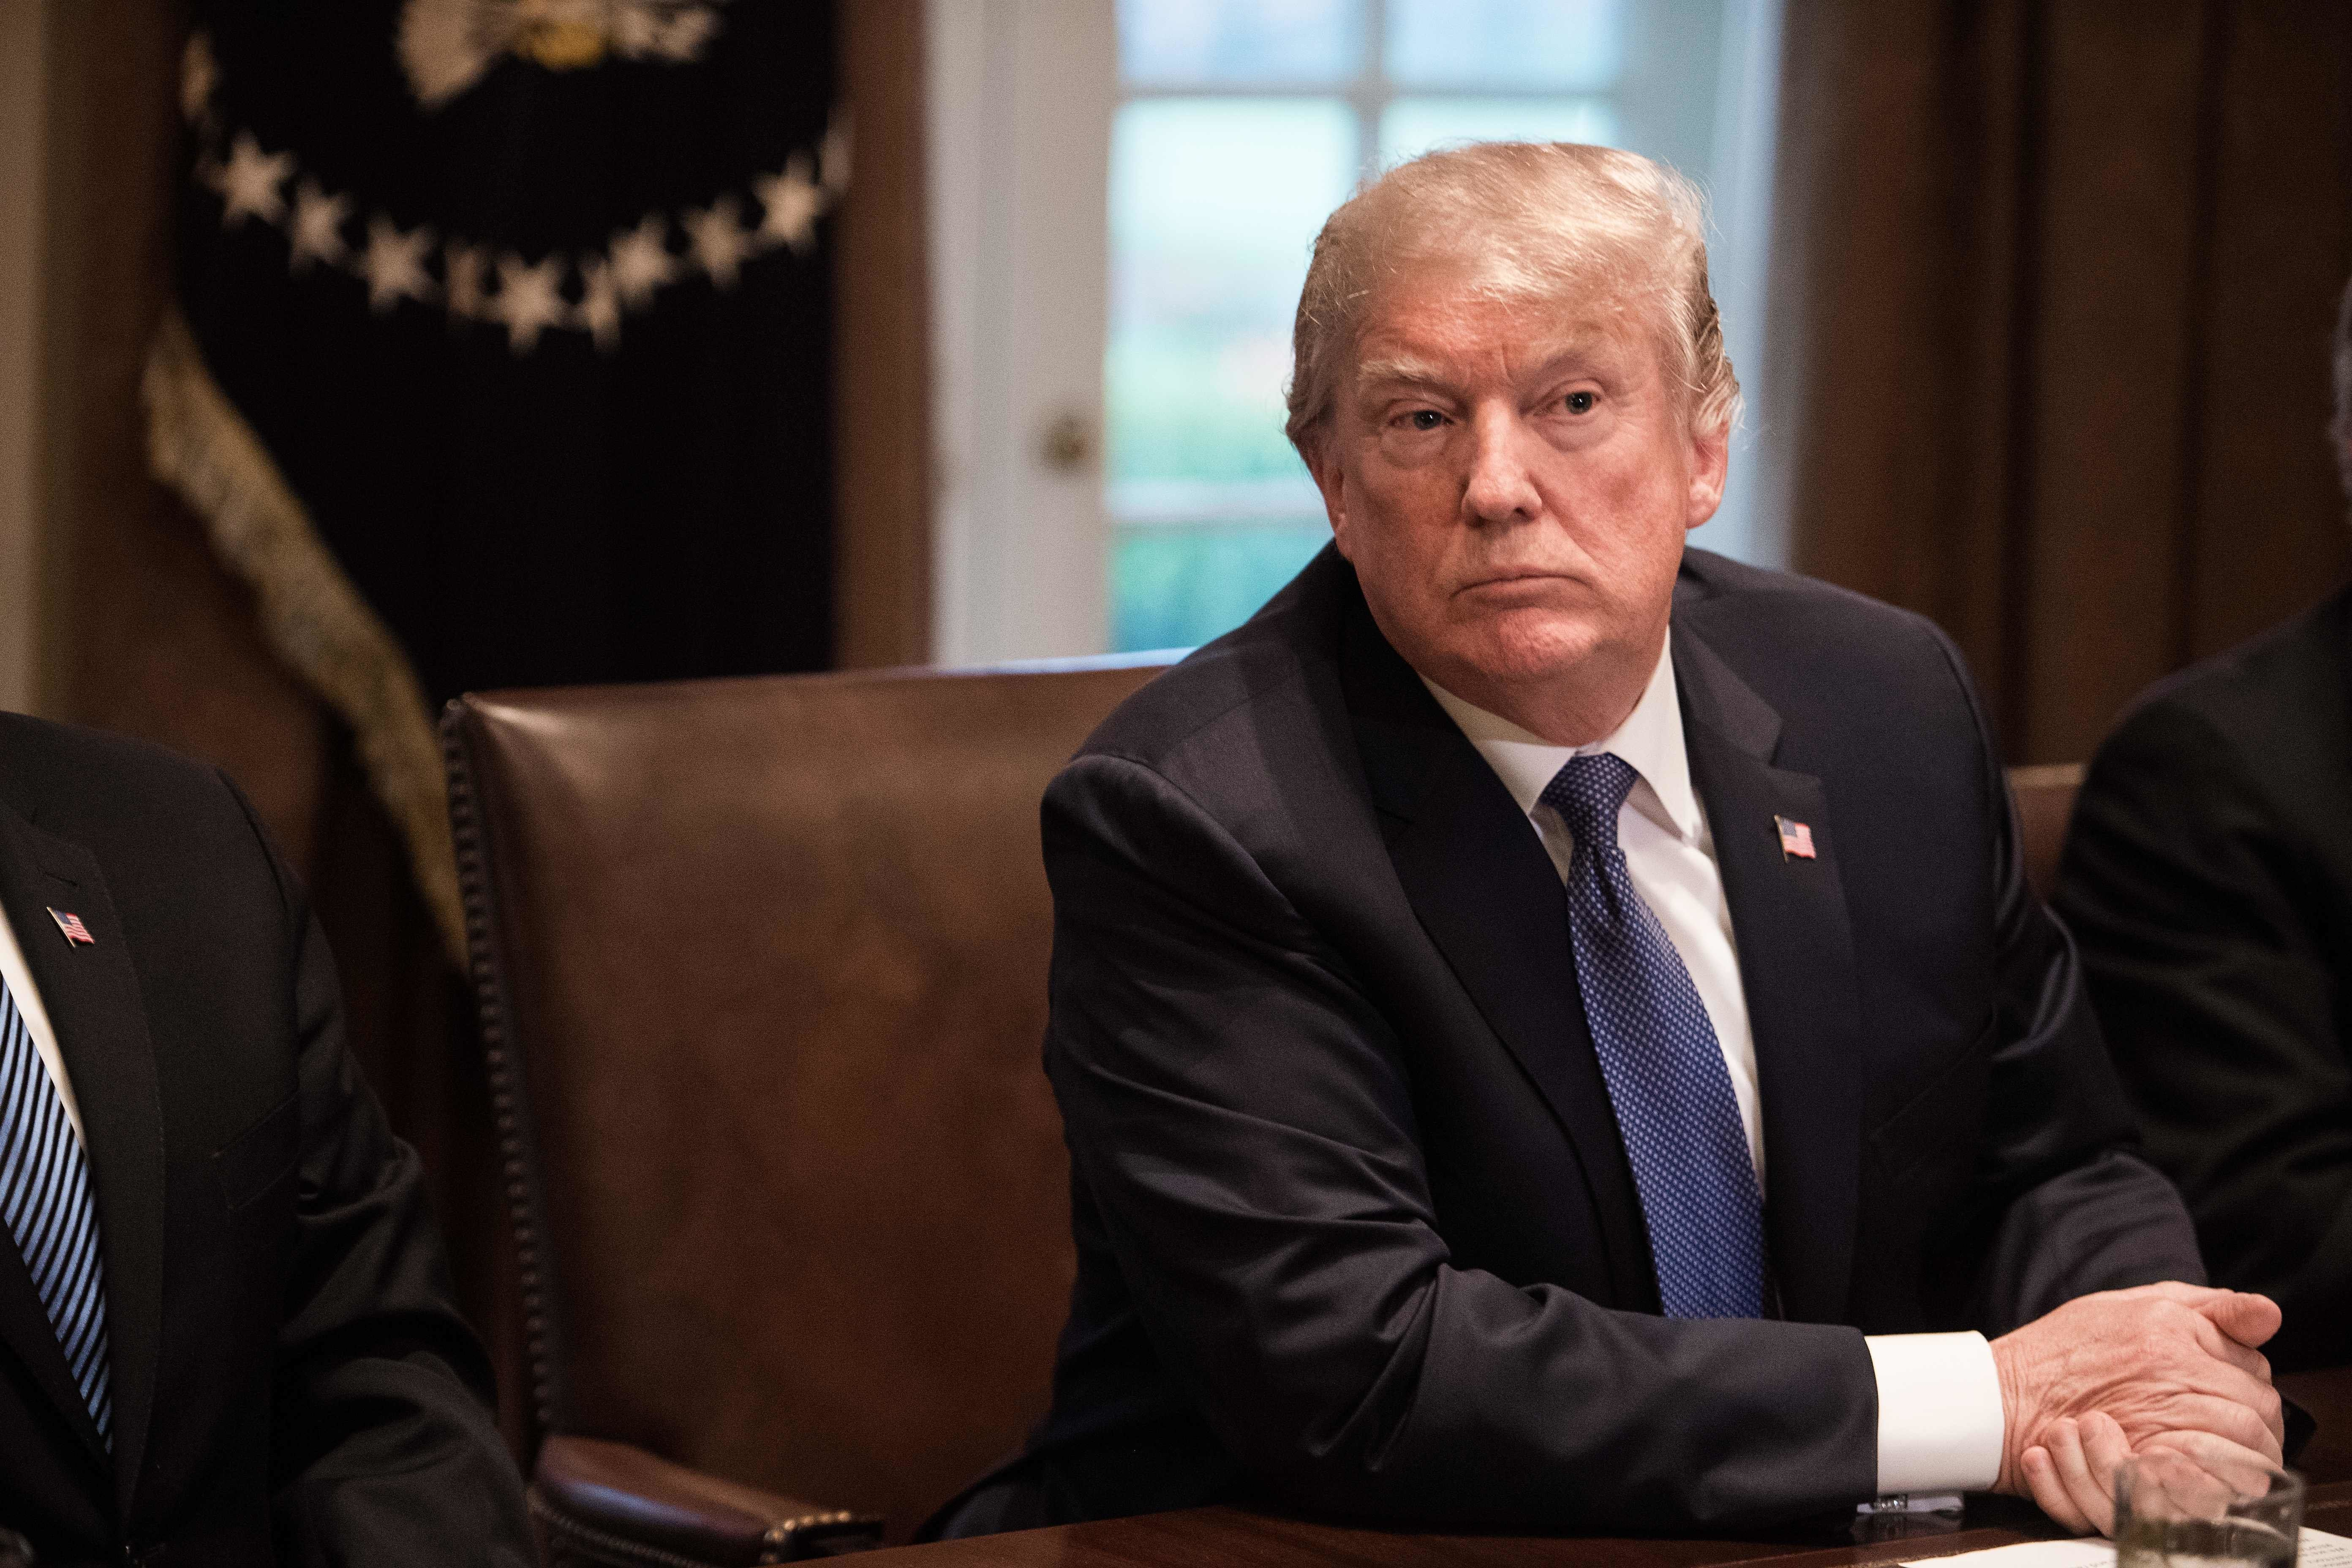 US President Donald Trump attends a meeting with senior military leaders at the White House in Washington, DC, on April 9, 2018. President Donald Trump said Monday that 'major decisions' would be made on a Syria response in the next day or two, after warning that Damascus would have a 'big price to pay' over an alleged chemical attack on a rebel-held town.Trump condemned what he called a 'heinous attack on innocent' Syrians in Douma, as he opened a cabinet meeting at the White House.   / AFP PHOTO / NICHOLAS KAMM        (Photo credit should read NICHOLAS KAMM/AFP/Getty Images)